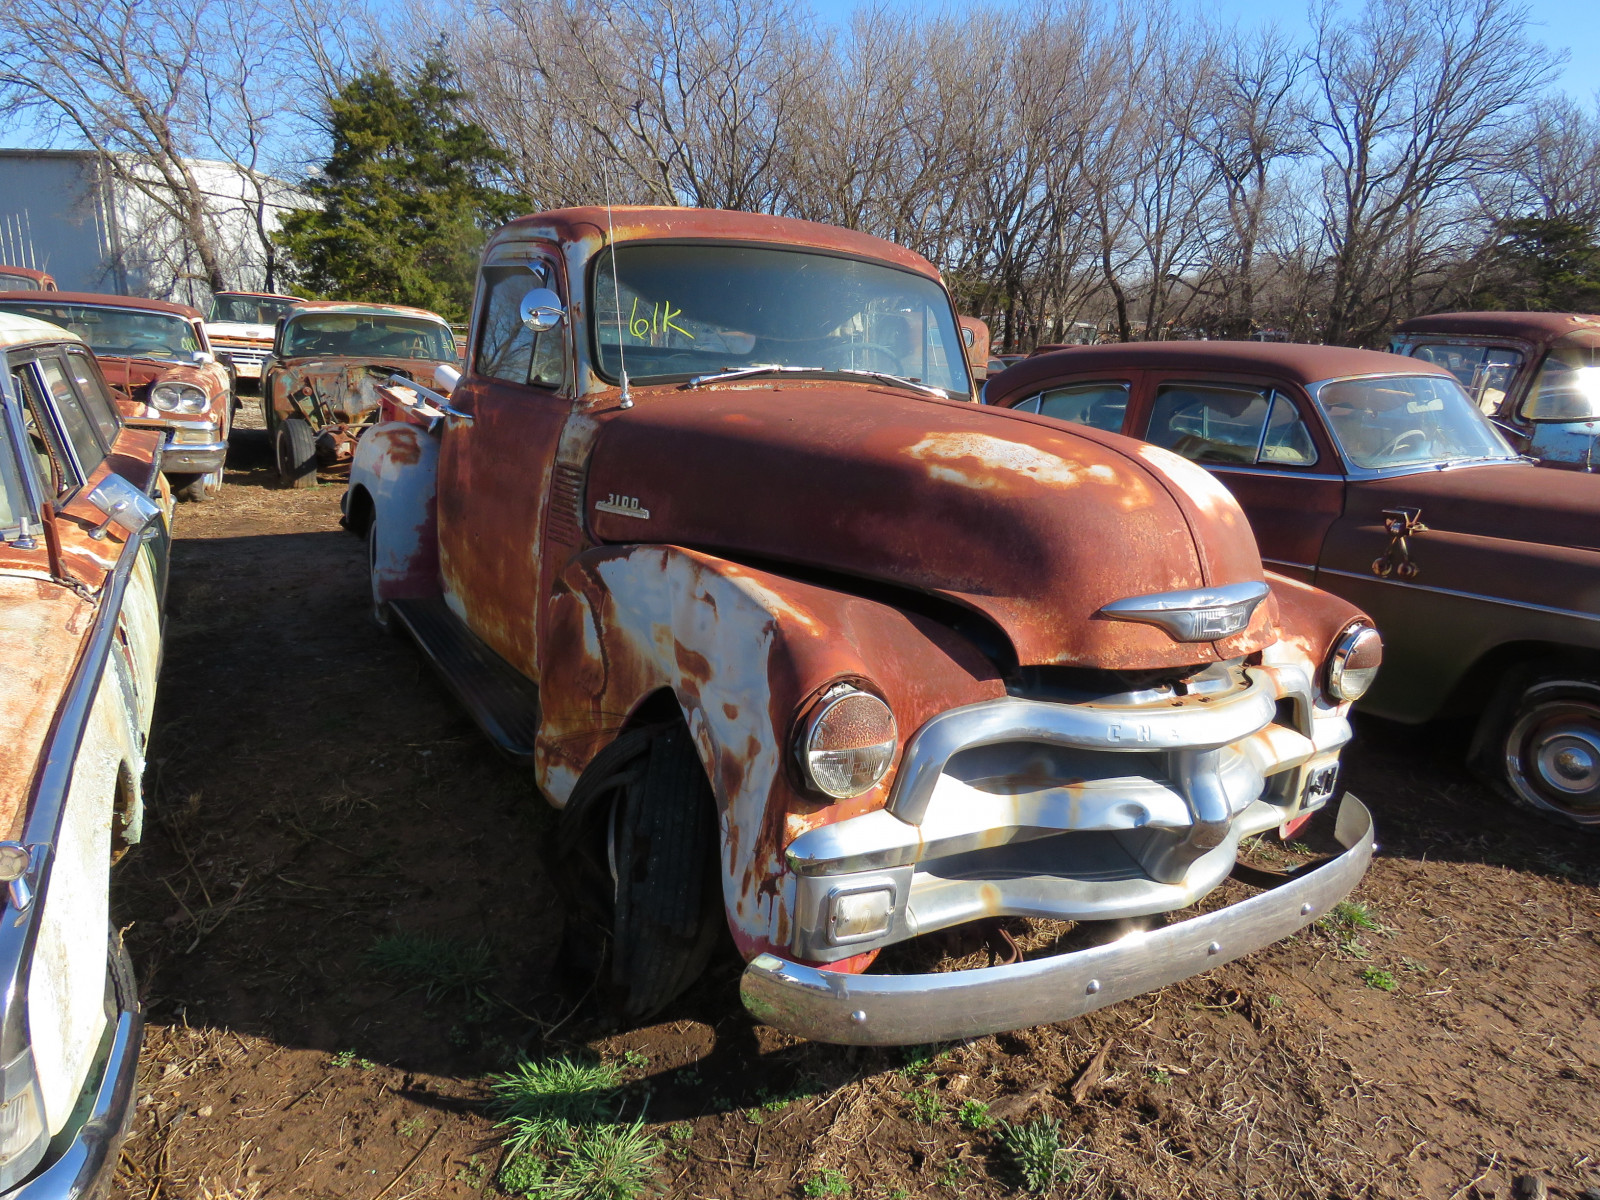 1954 Chevrolet Stepside Pickup - Image 4